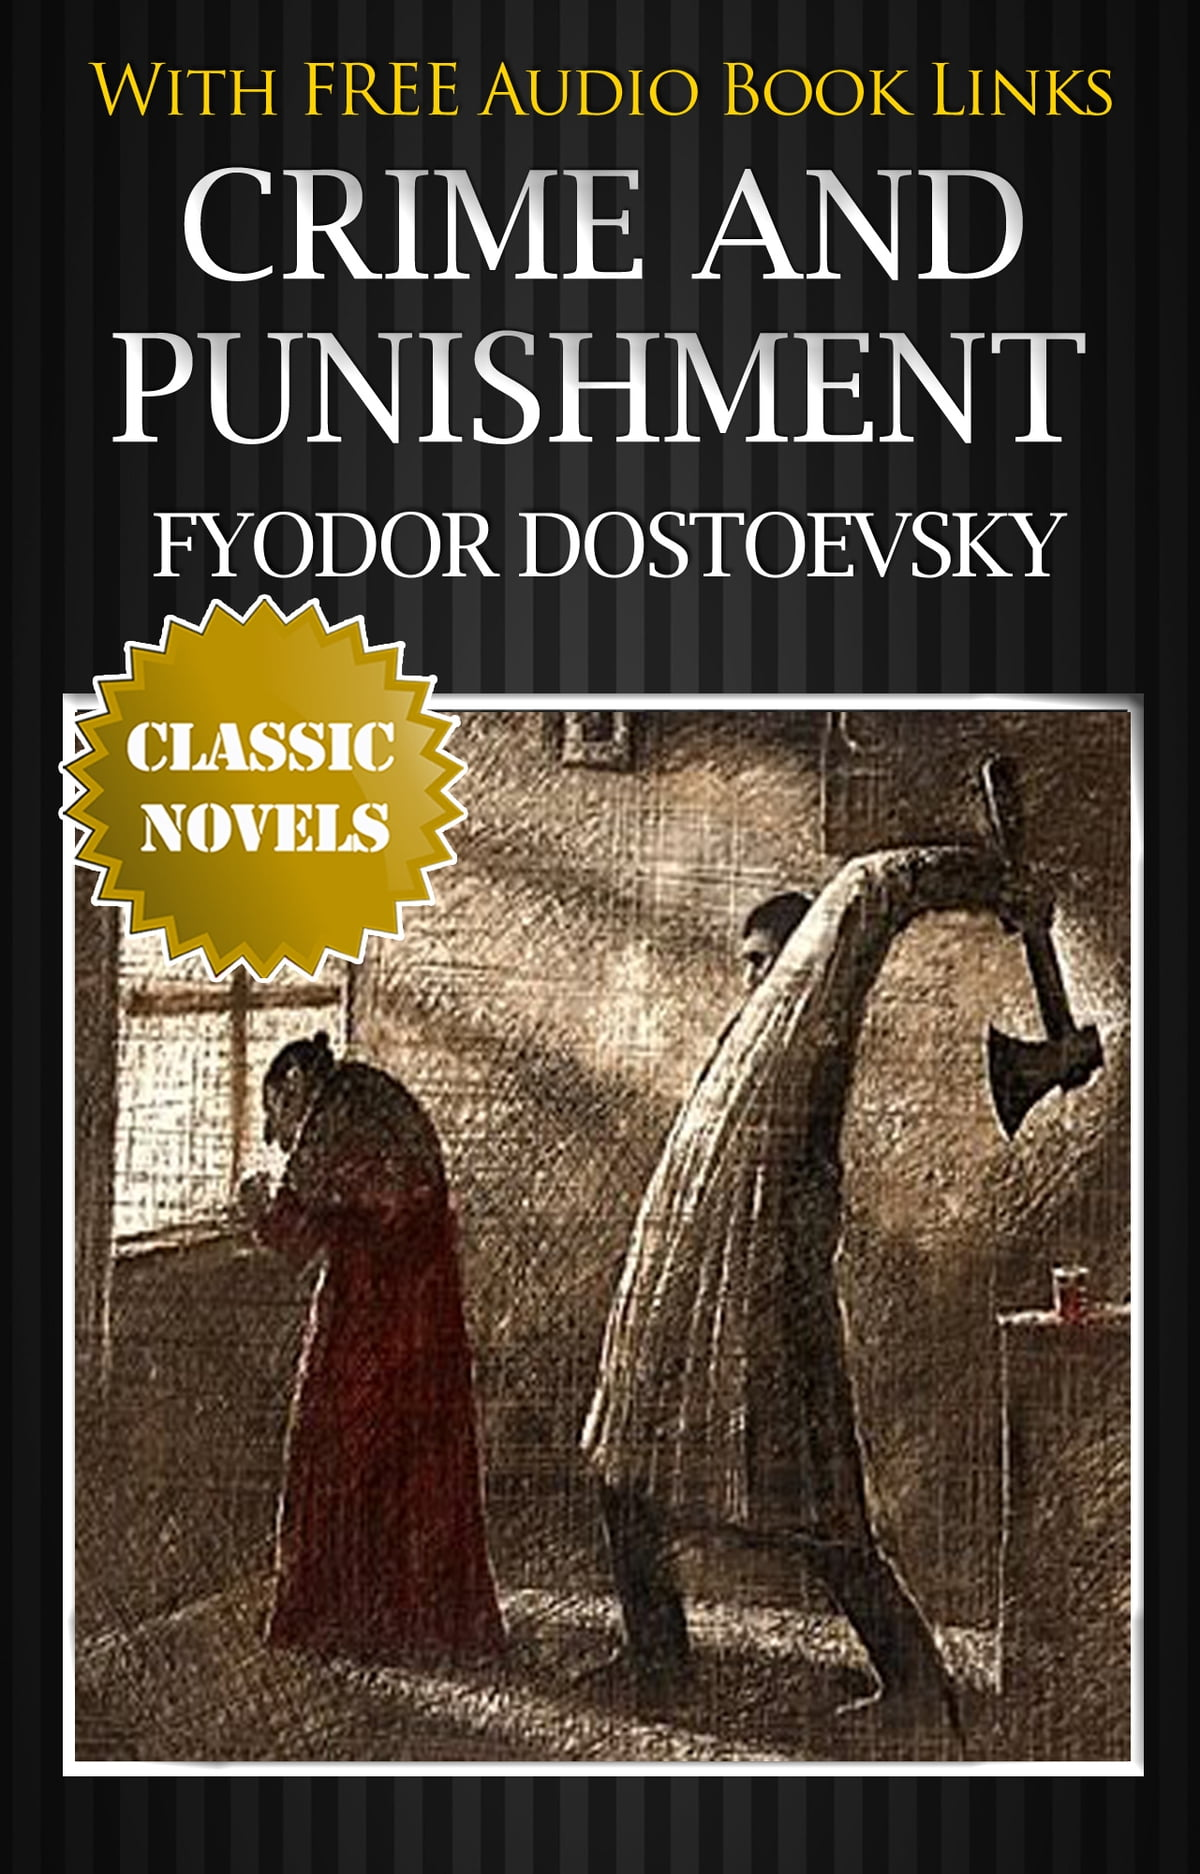 crime and punishment audiobook free download